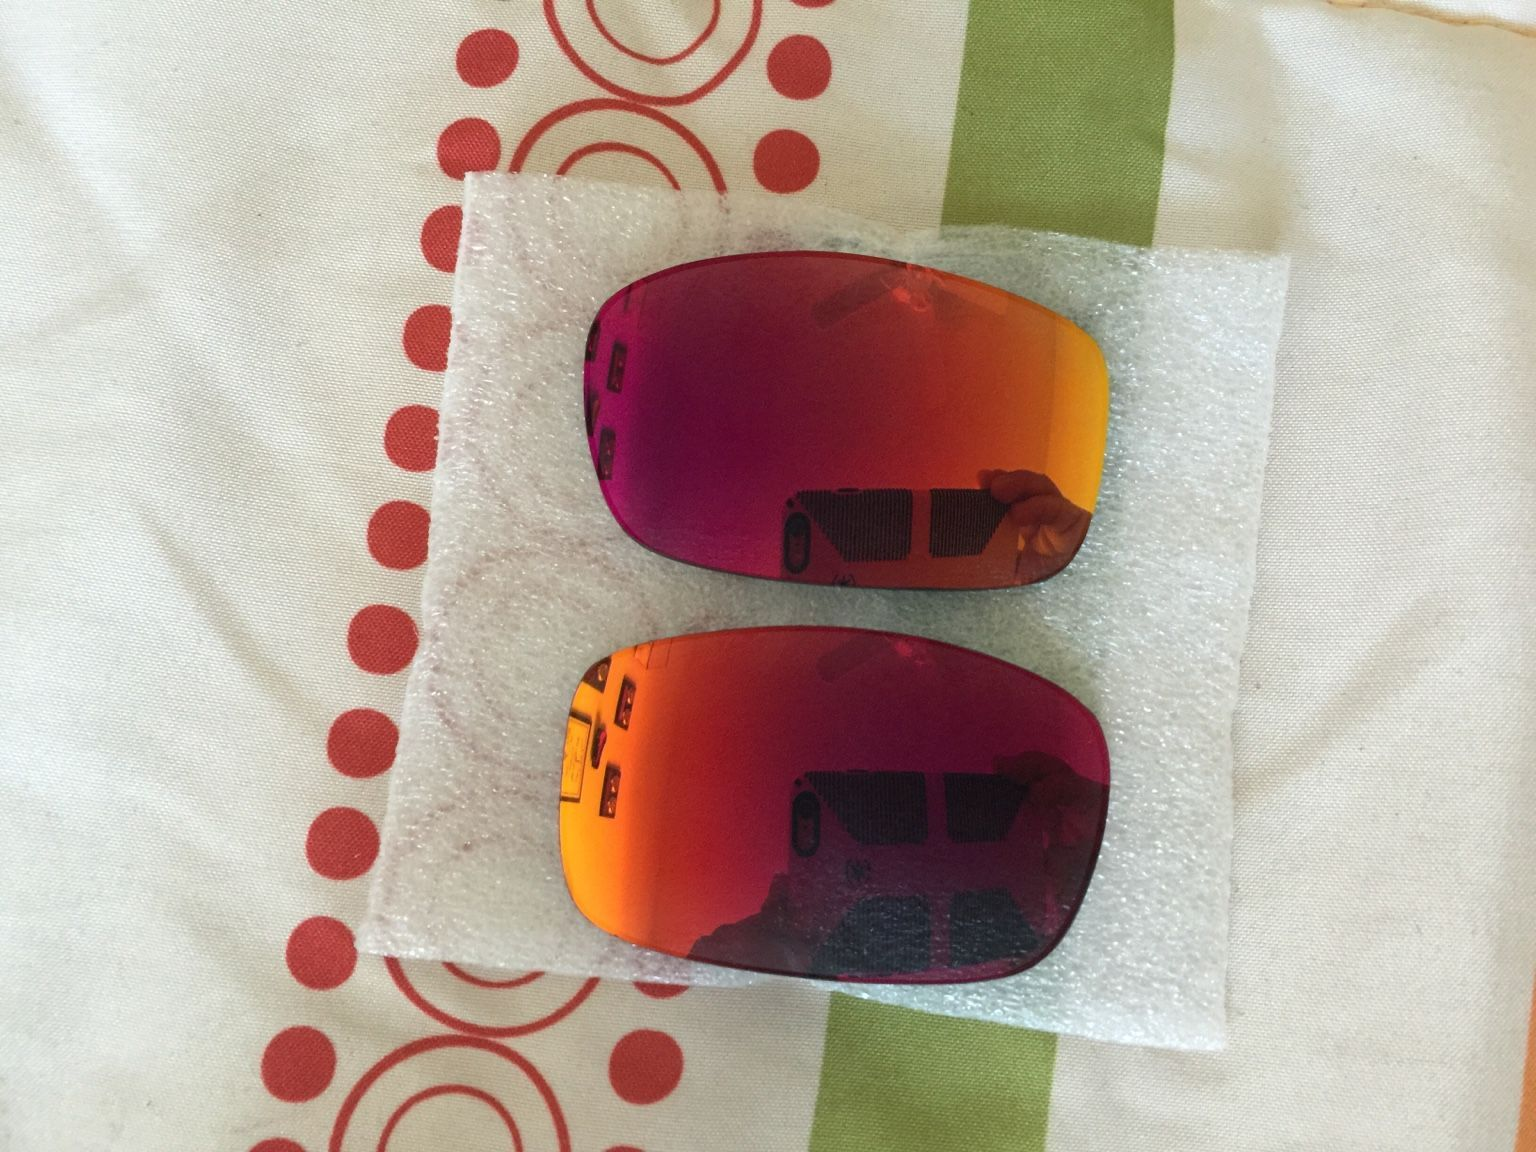 ***GONE*** Mint X-metal/Ruby XS with extra lenses - 663153d8d830571044dca551eece77c8.jpg